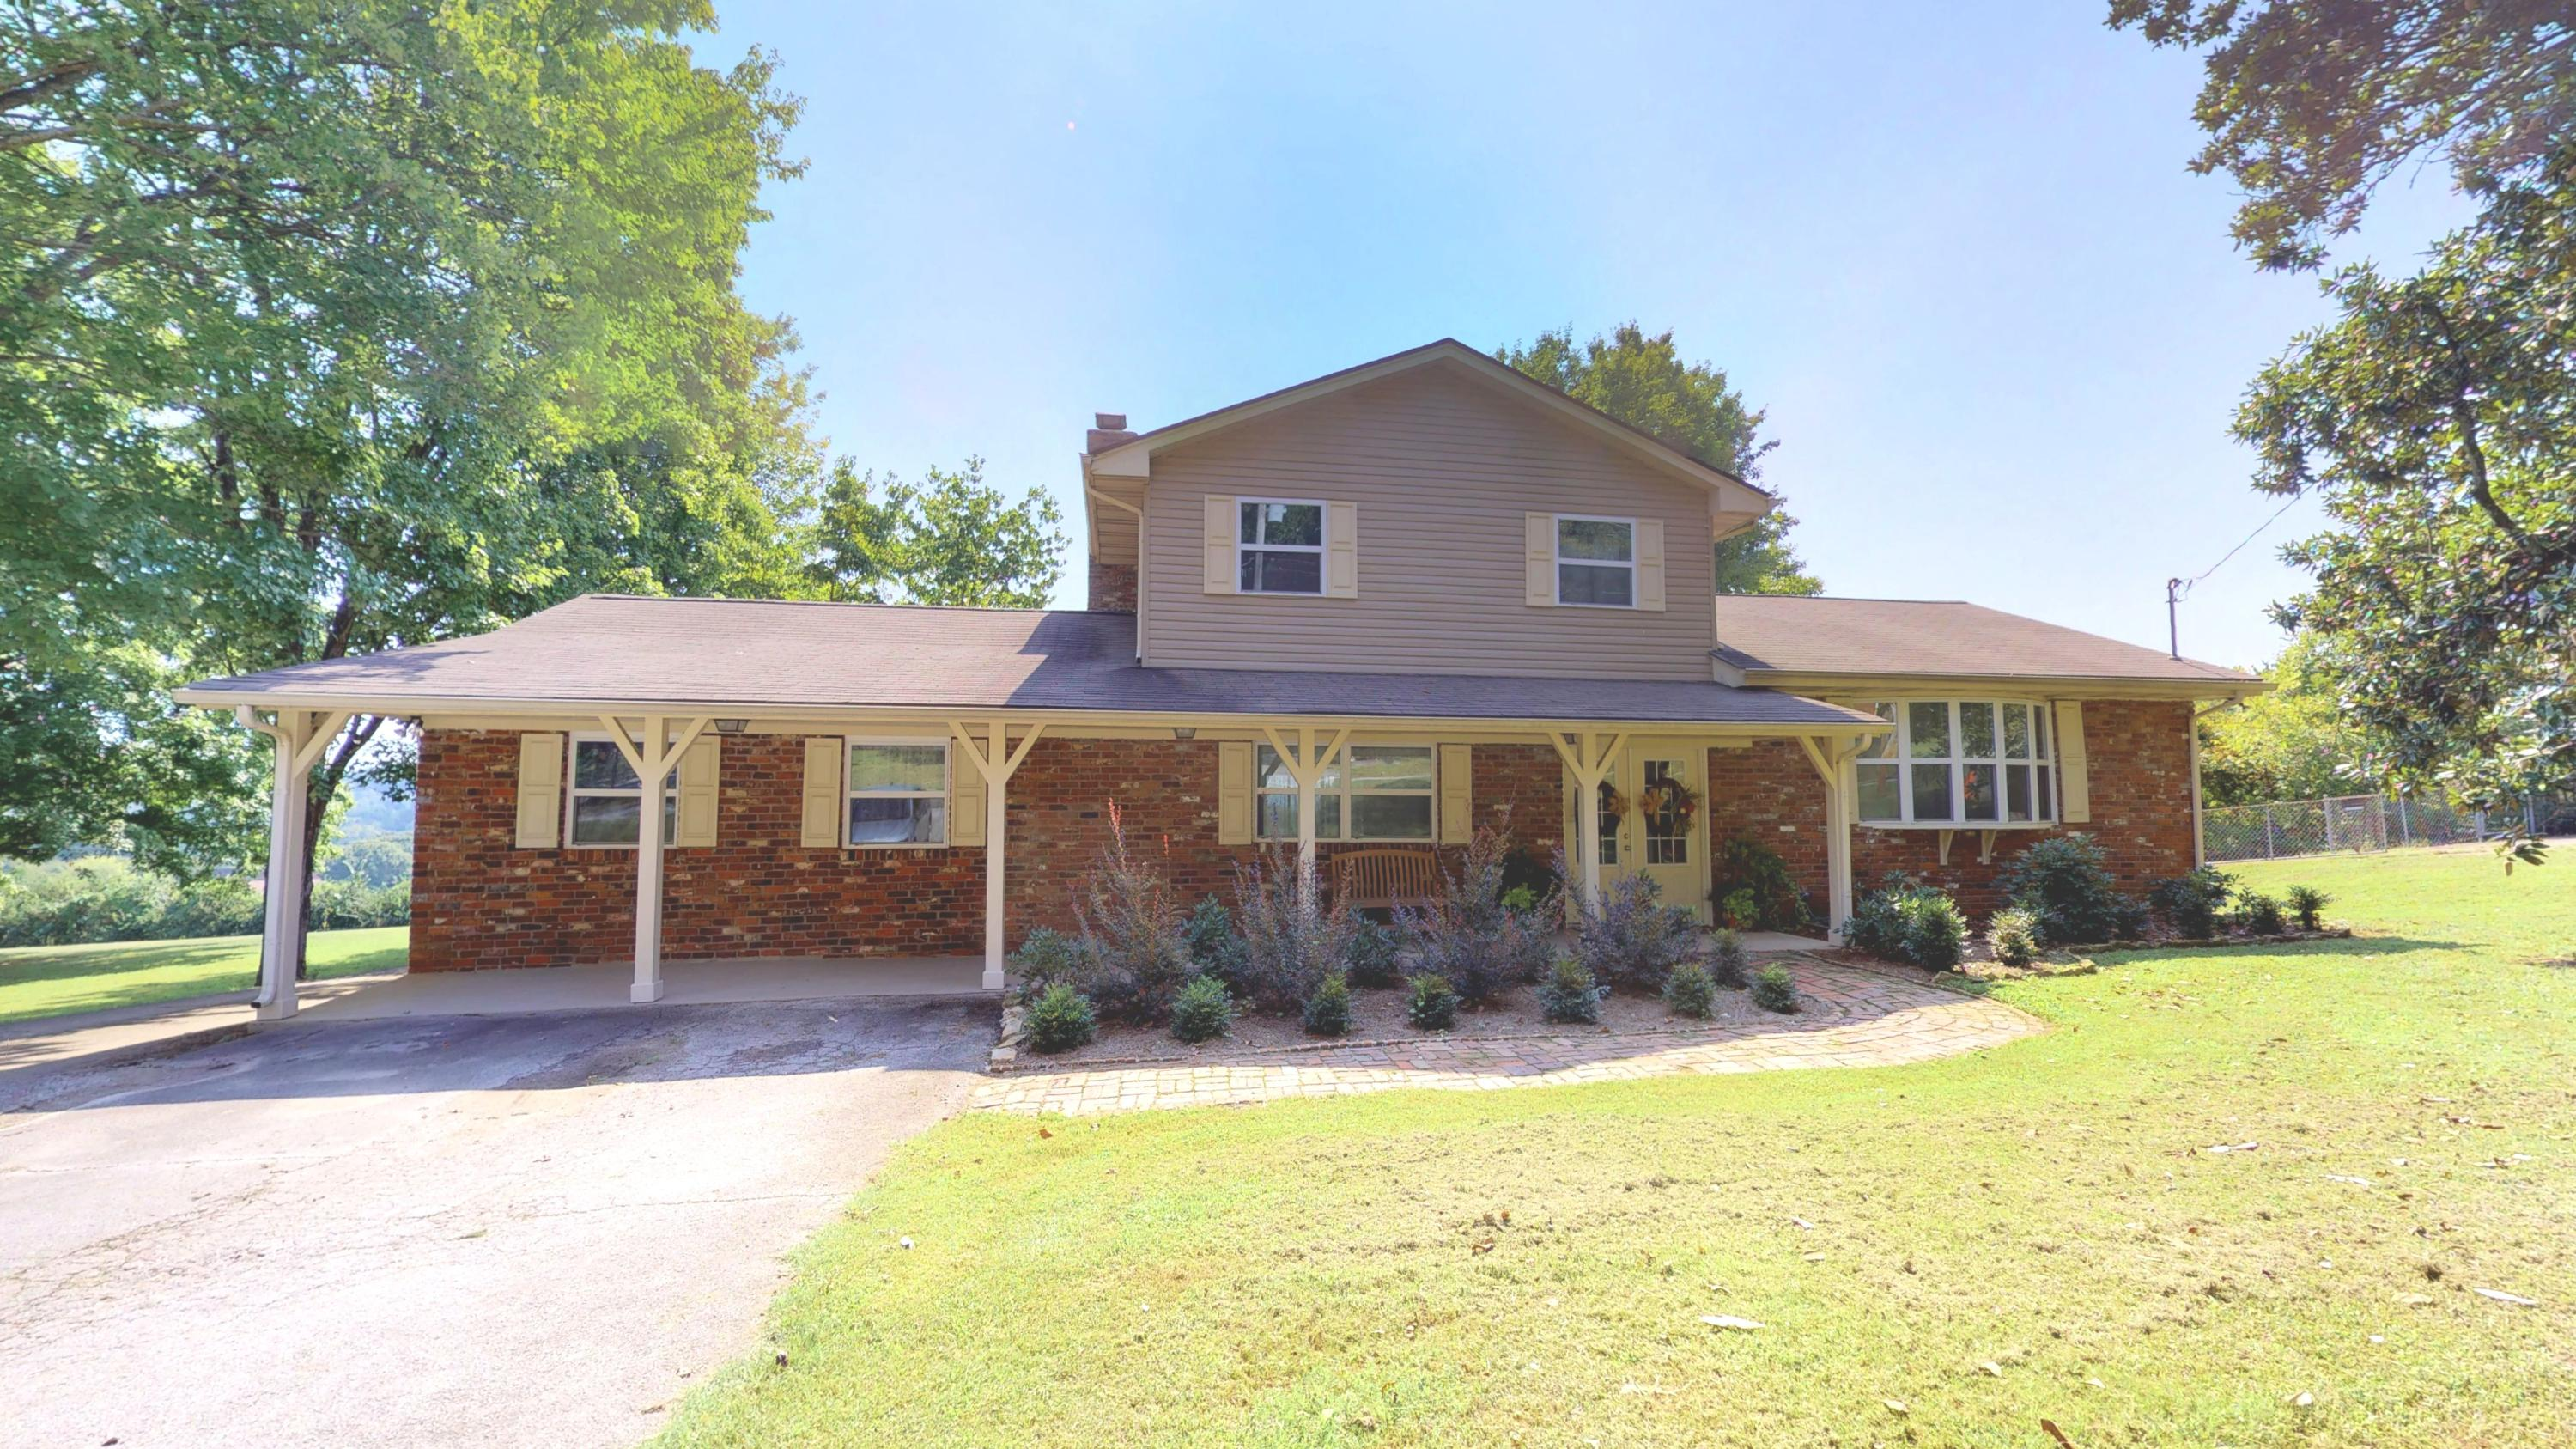 11208 Sonja Drive, Knoxville, TN 37934